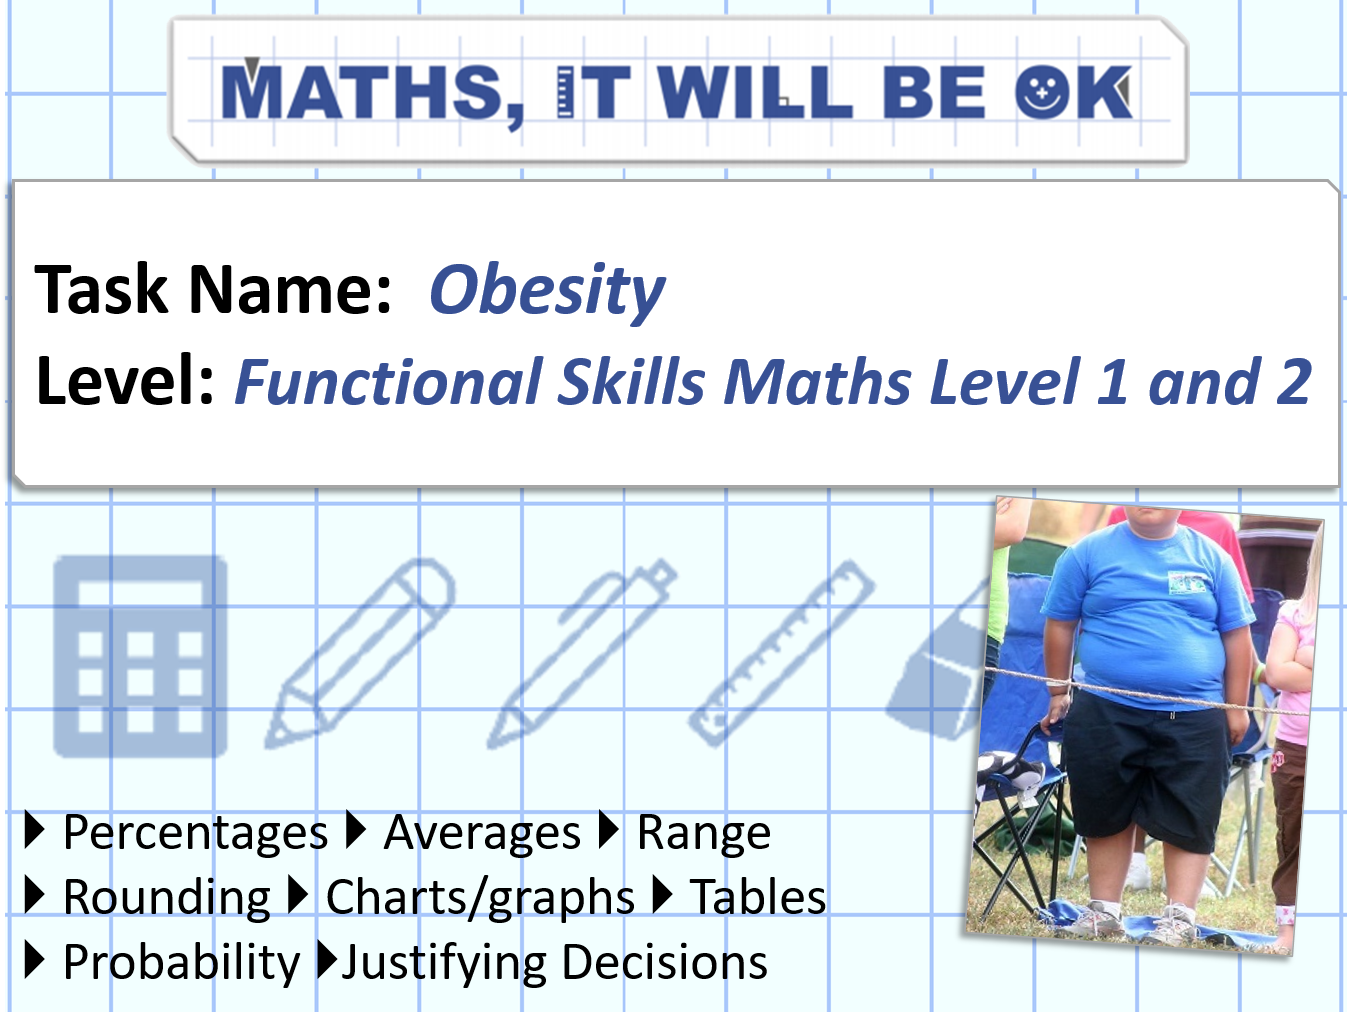 FS Maths Level 1 and 2 - Statistics -Obesity - Exam Style